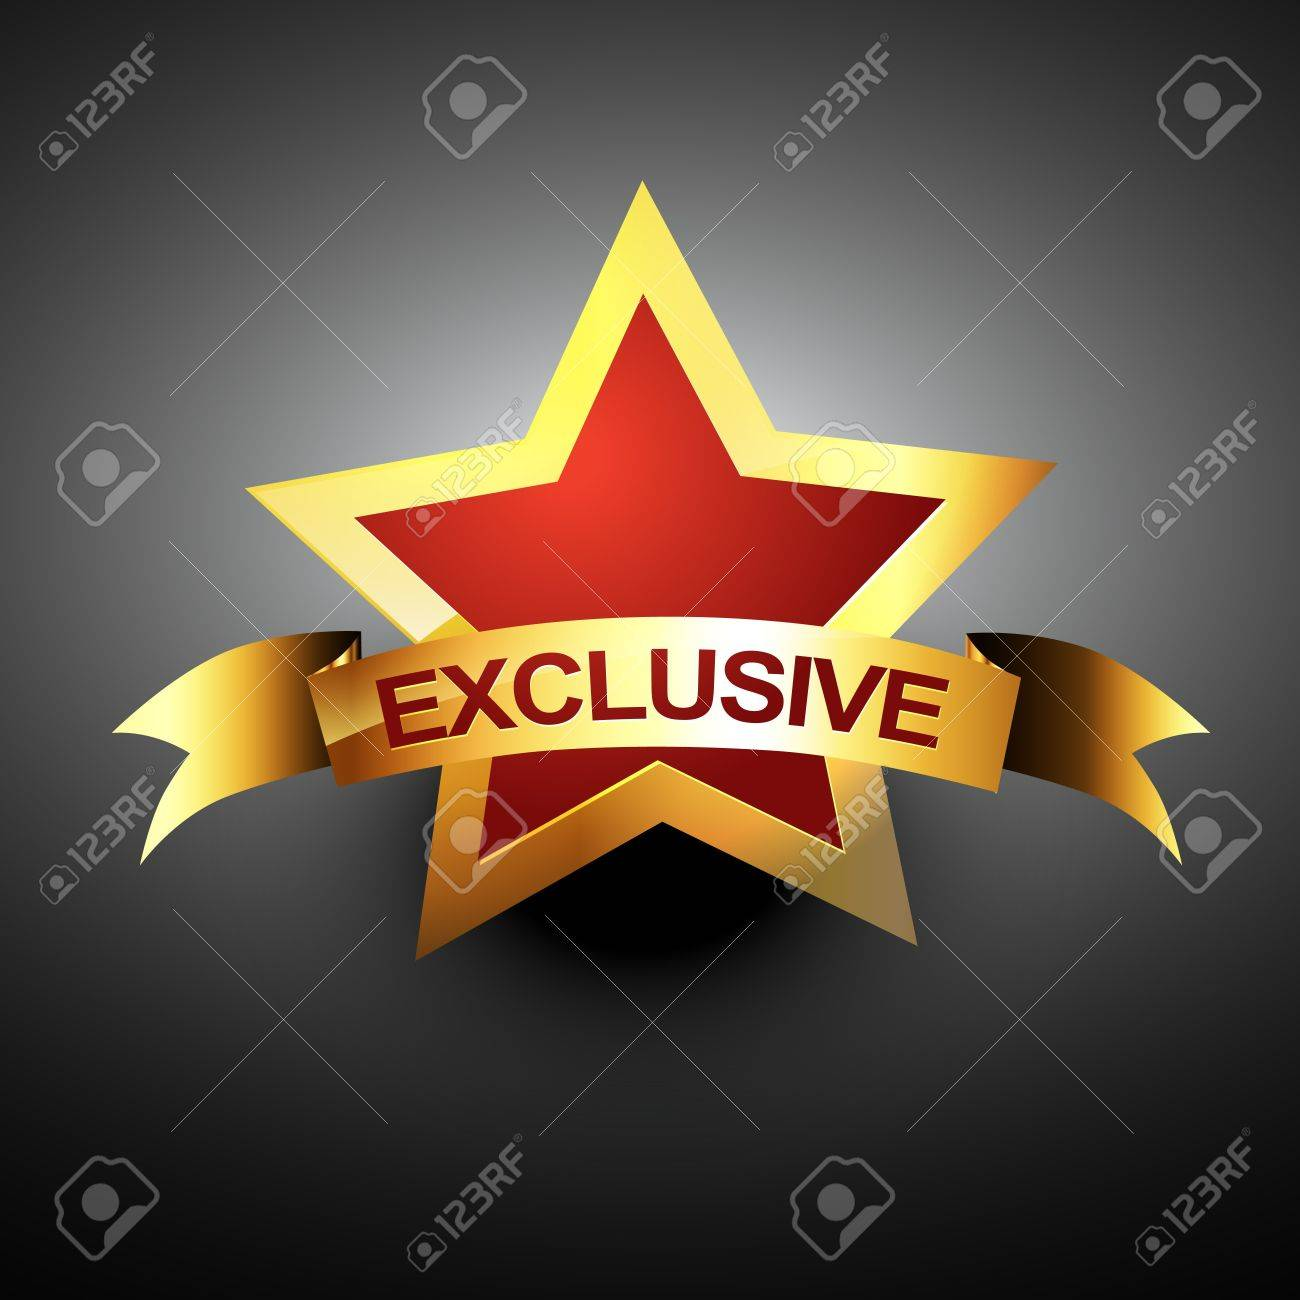 Exclusive Icon Vector - exclusive icon in